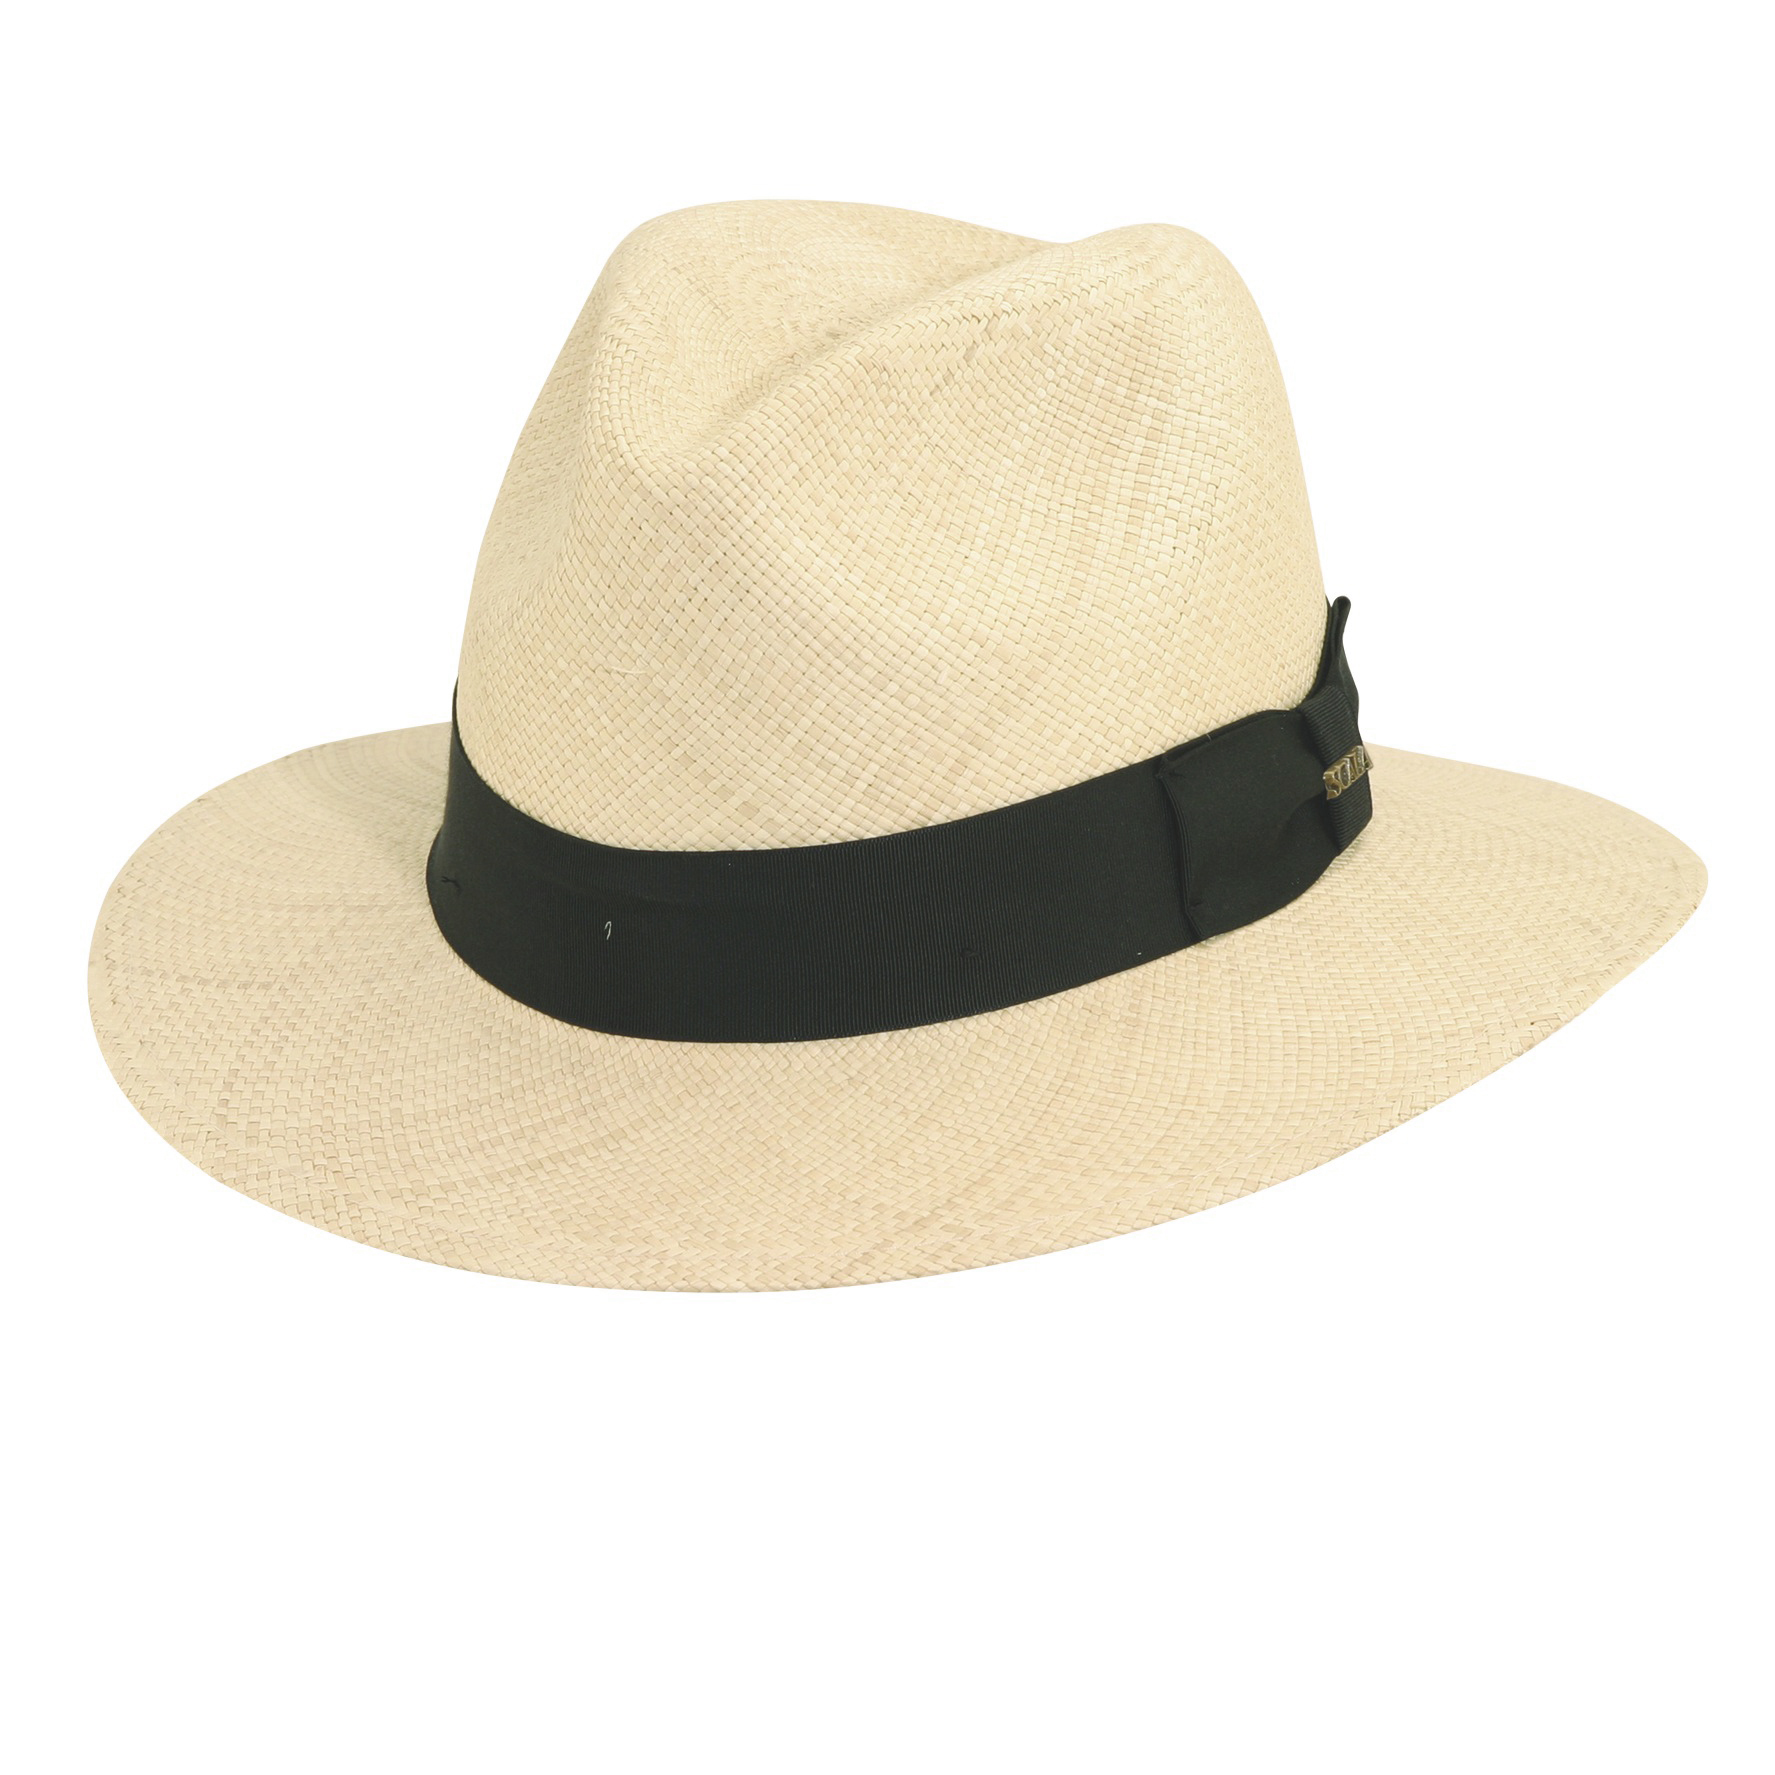 Panama Straw Safari Hat with Grosgrain Trim